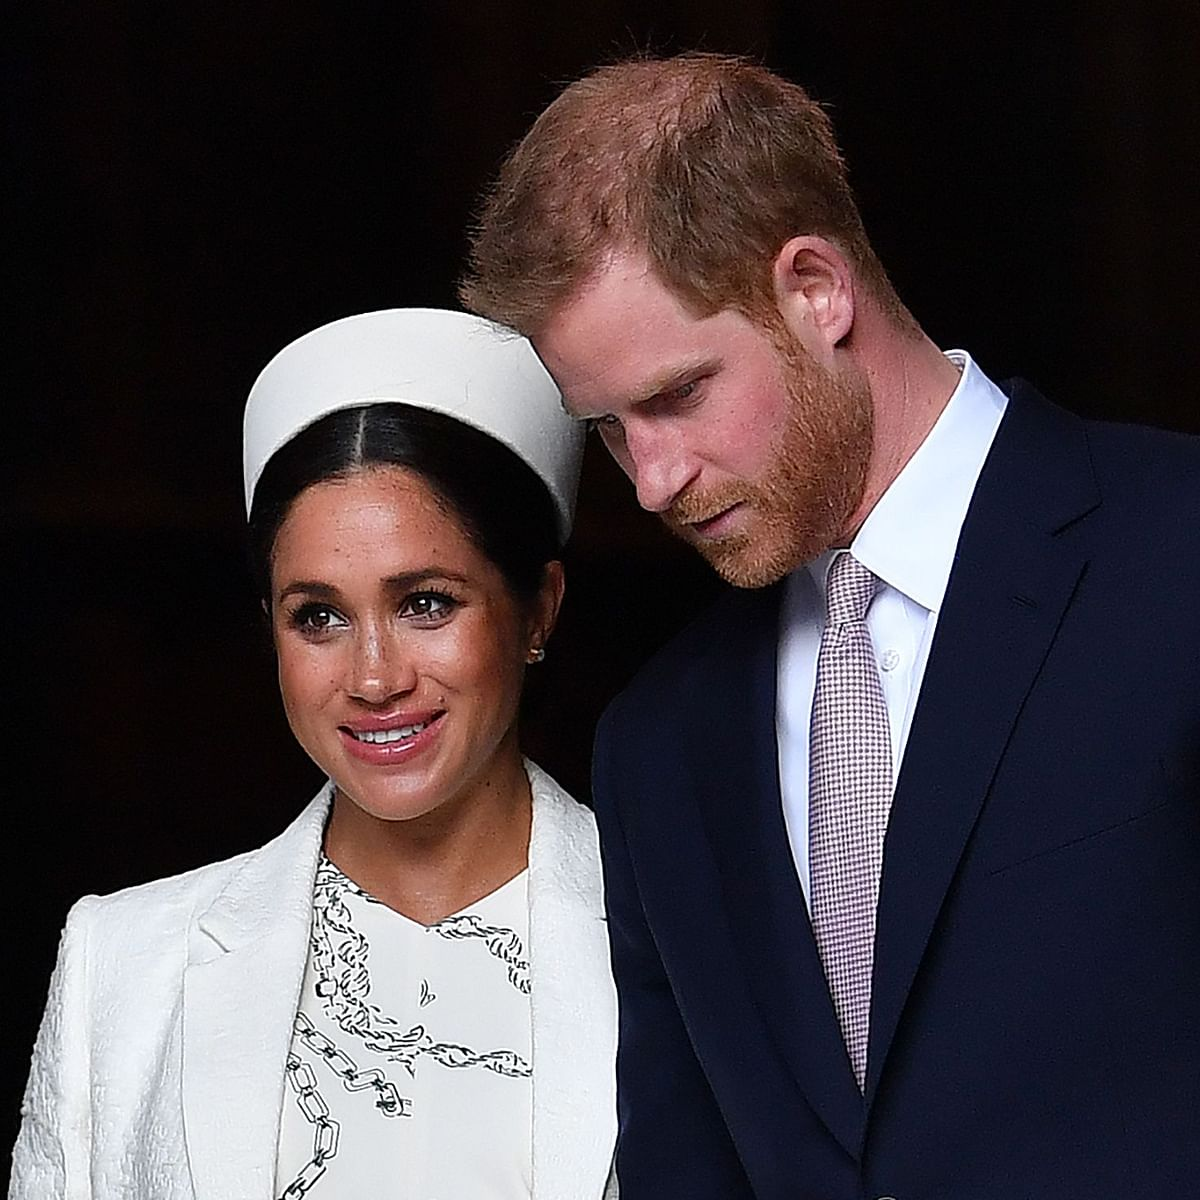 Man arrested for trespassing Meghan Markle, Prince Harry's home in California